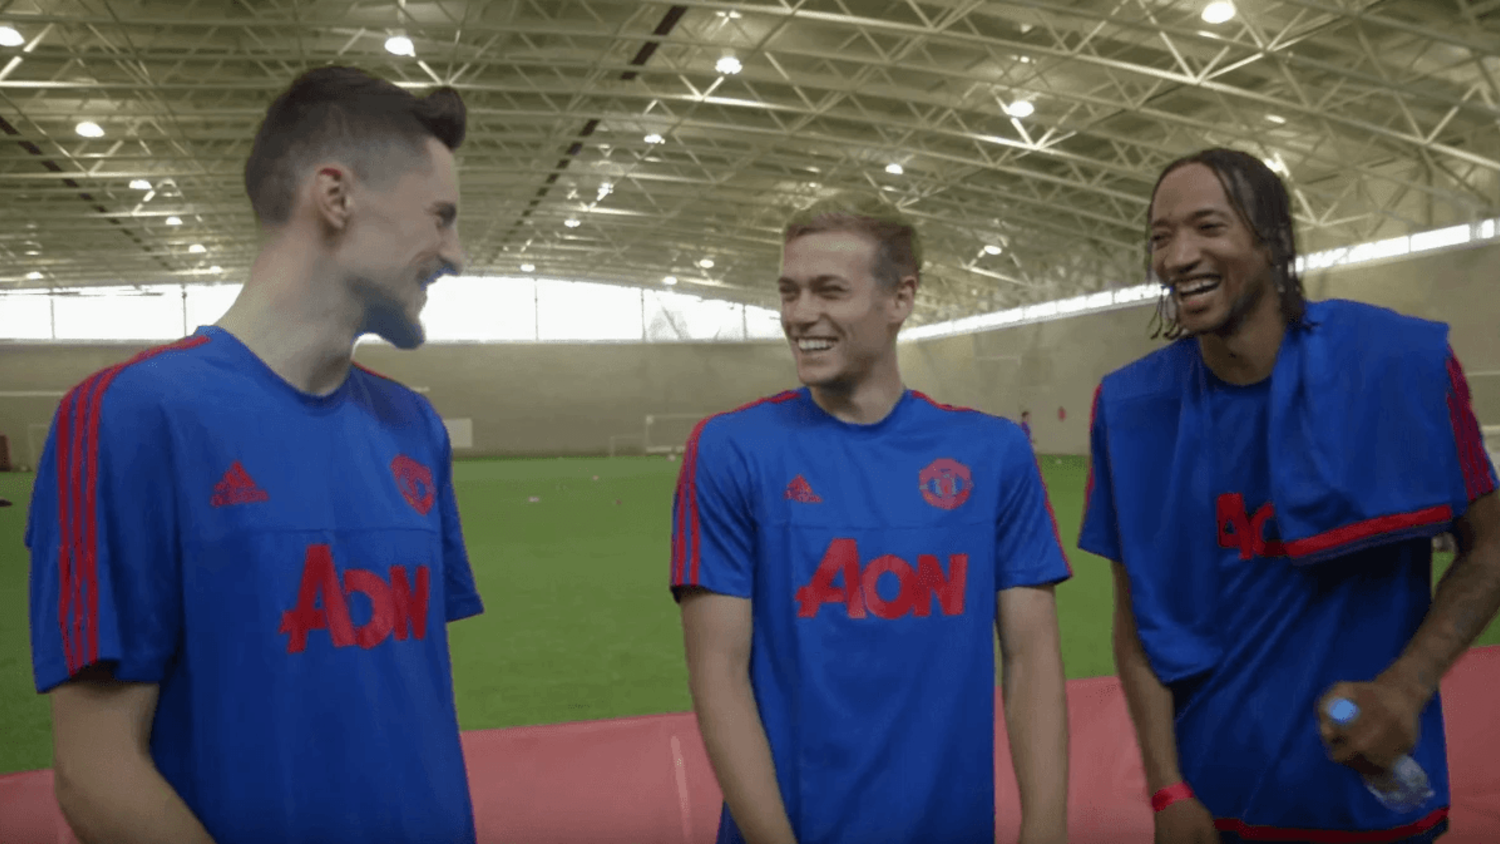 Exclusive Man United Kit Launch w/ Phil Jones, Daley Blind & more!